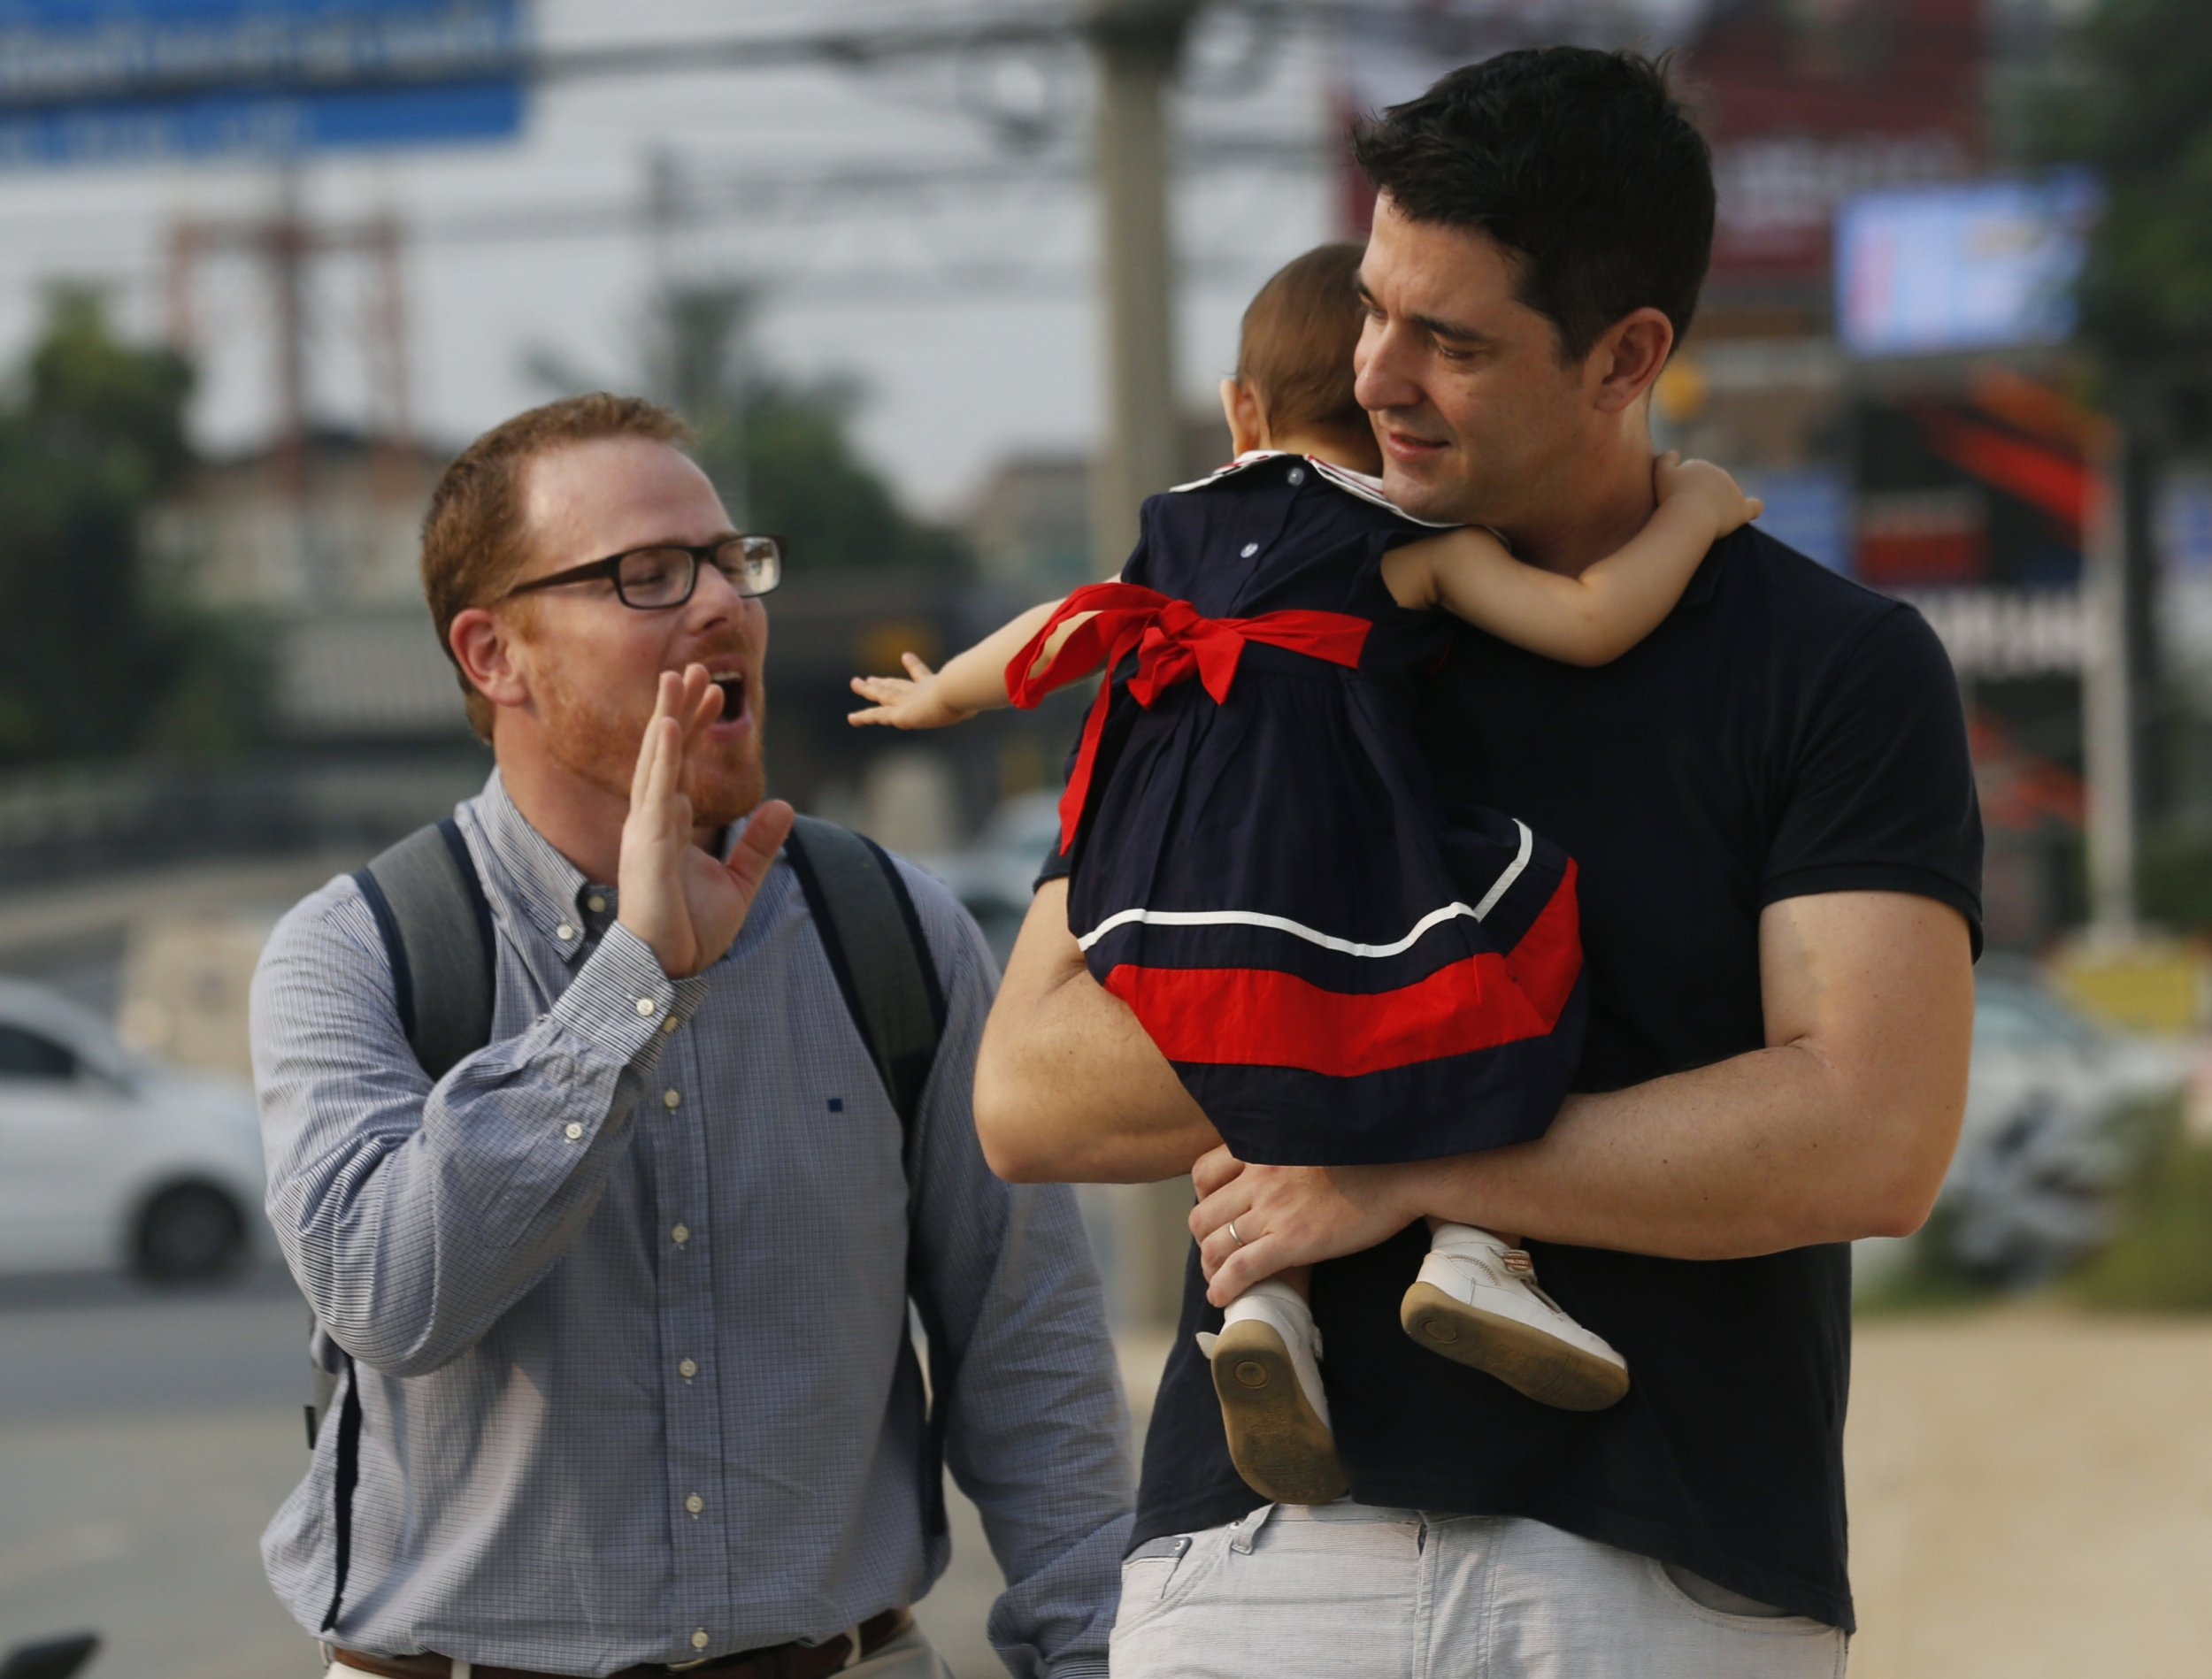 American Gordon Lake, left, and Manuel Santos, right, walk with their baby Carmen, center, at the Central Juvenile and Family Court in Bangkok, Thailand, Wednesday, March 23, 2016. The couple has opened a high-profile custody battle in Thailand for a baby girl born to a surrogate mother, who decided she wanted to keep the child when she found out they were gay. (AP Photo/Sakchai Lalit)